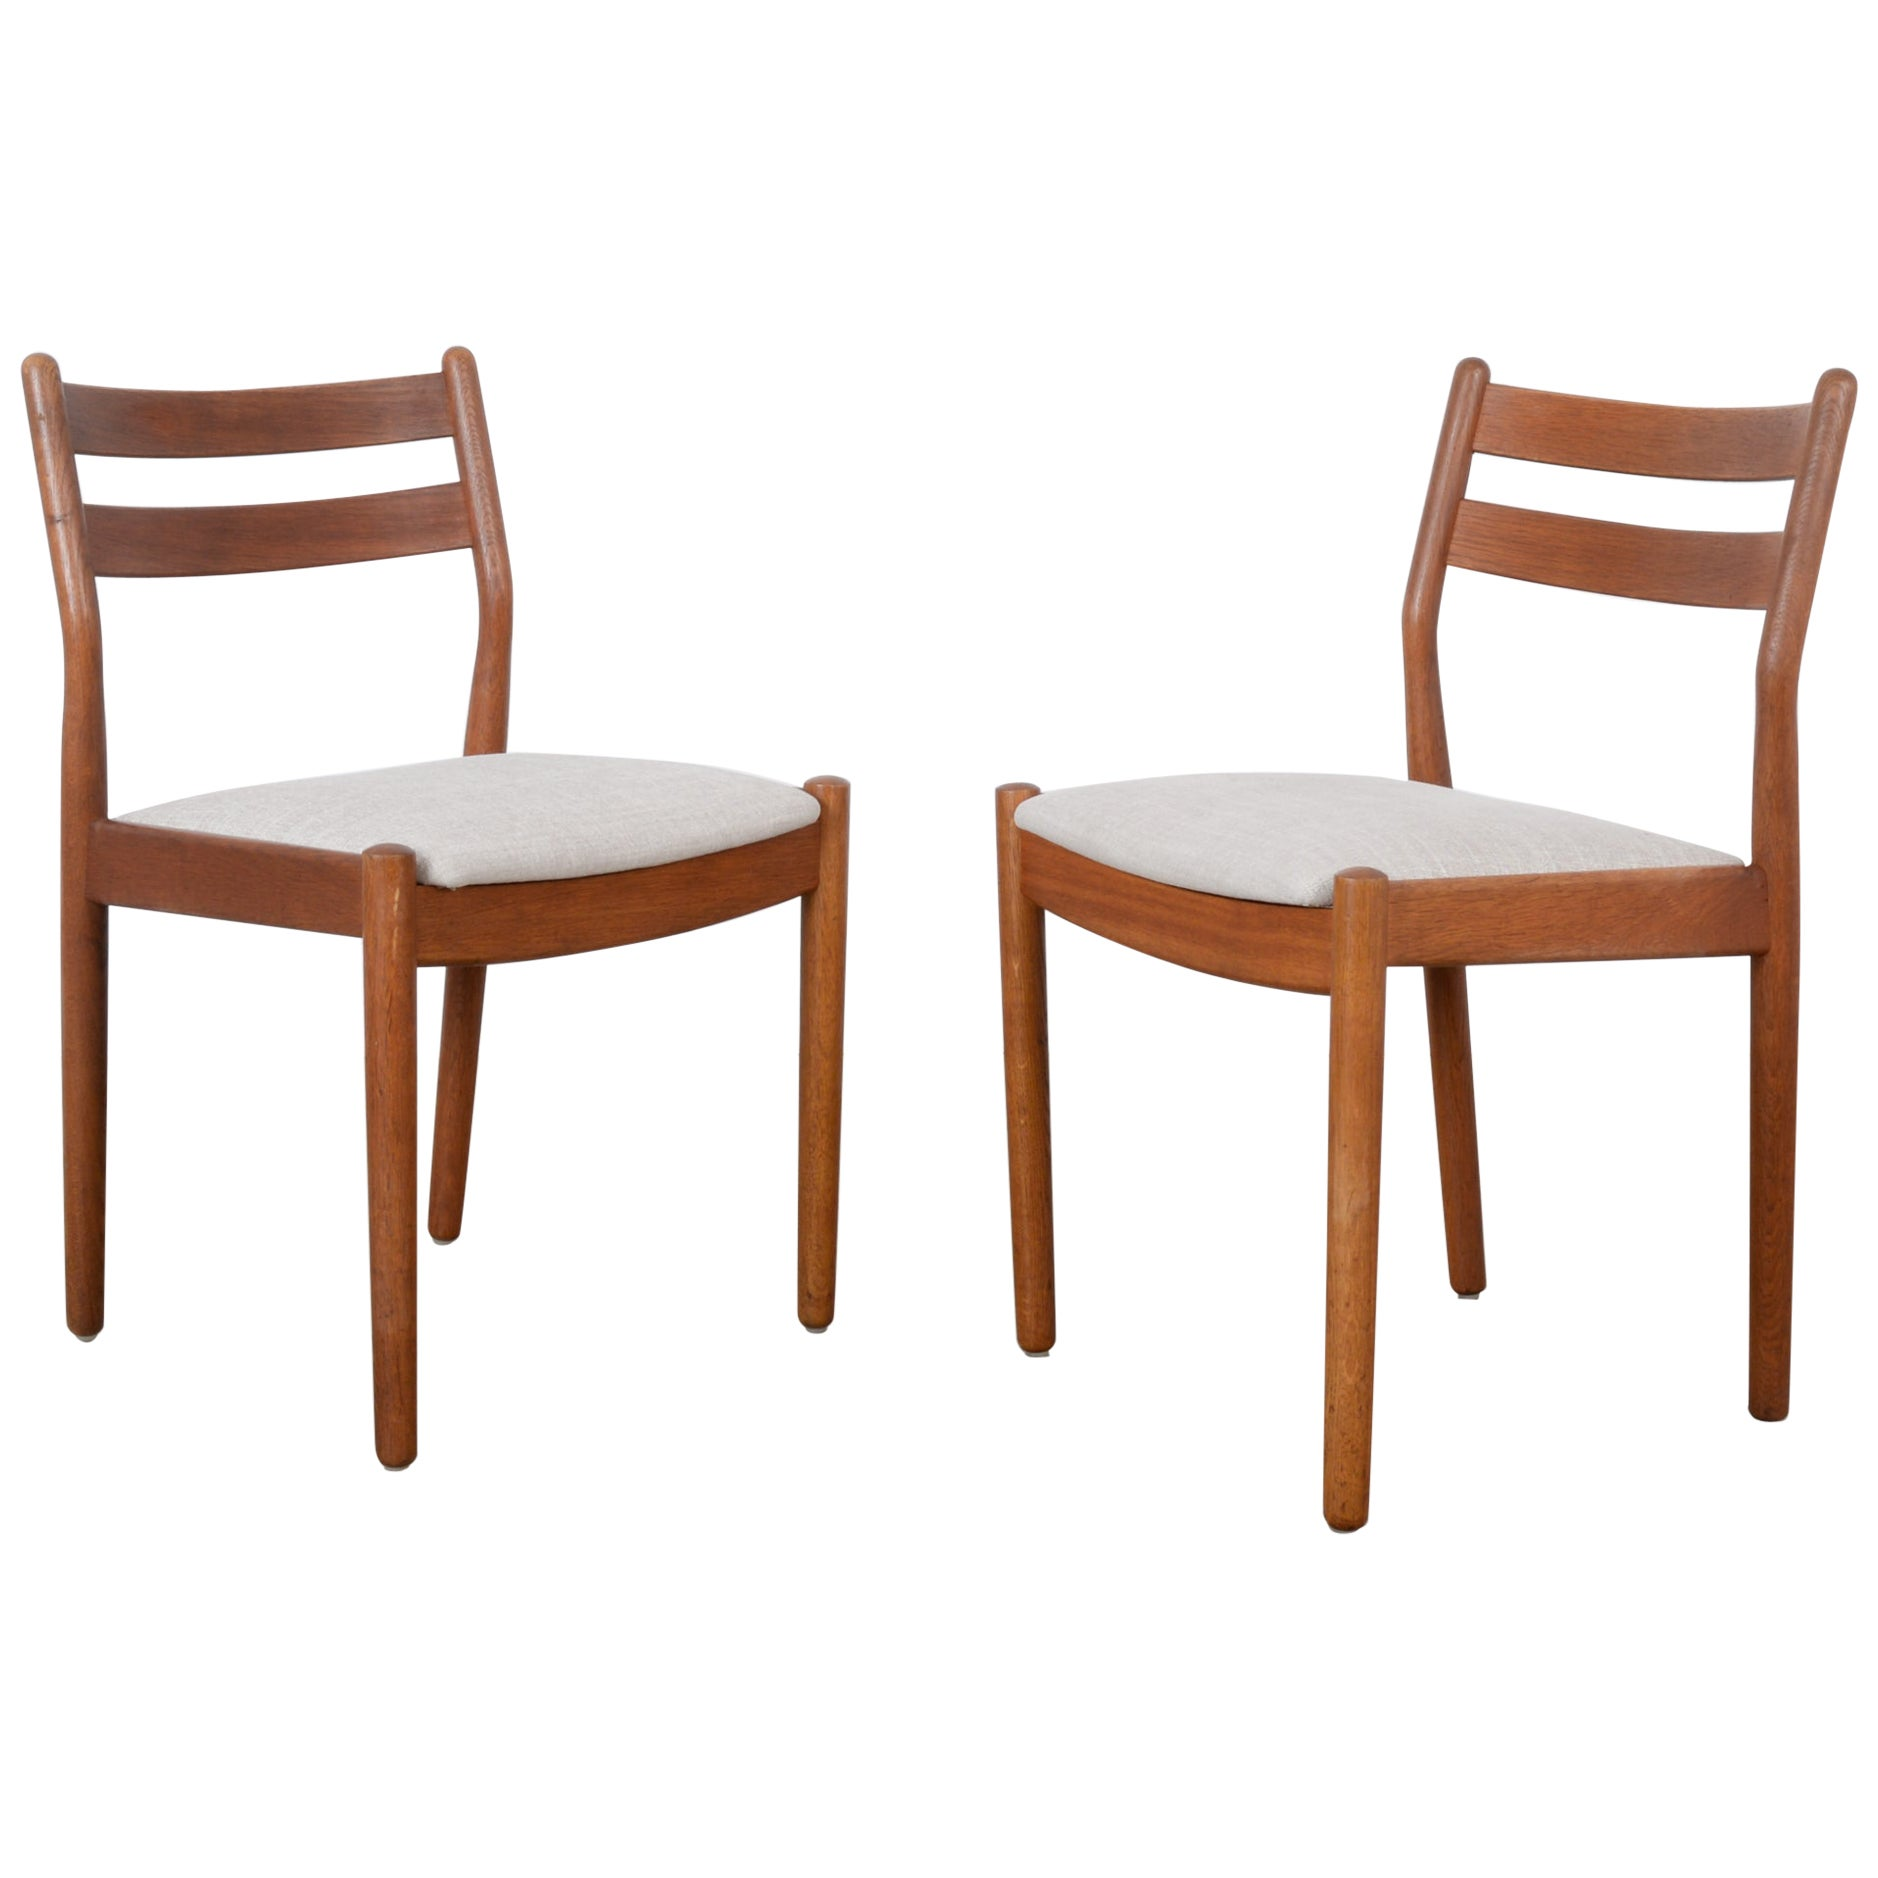 1960s Danish Wooden Chairs with Upholstered Seats, a Pair